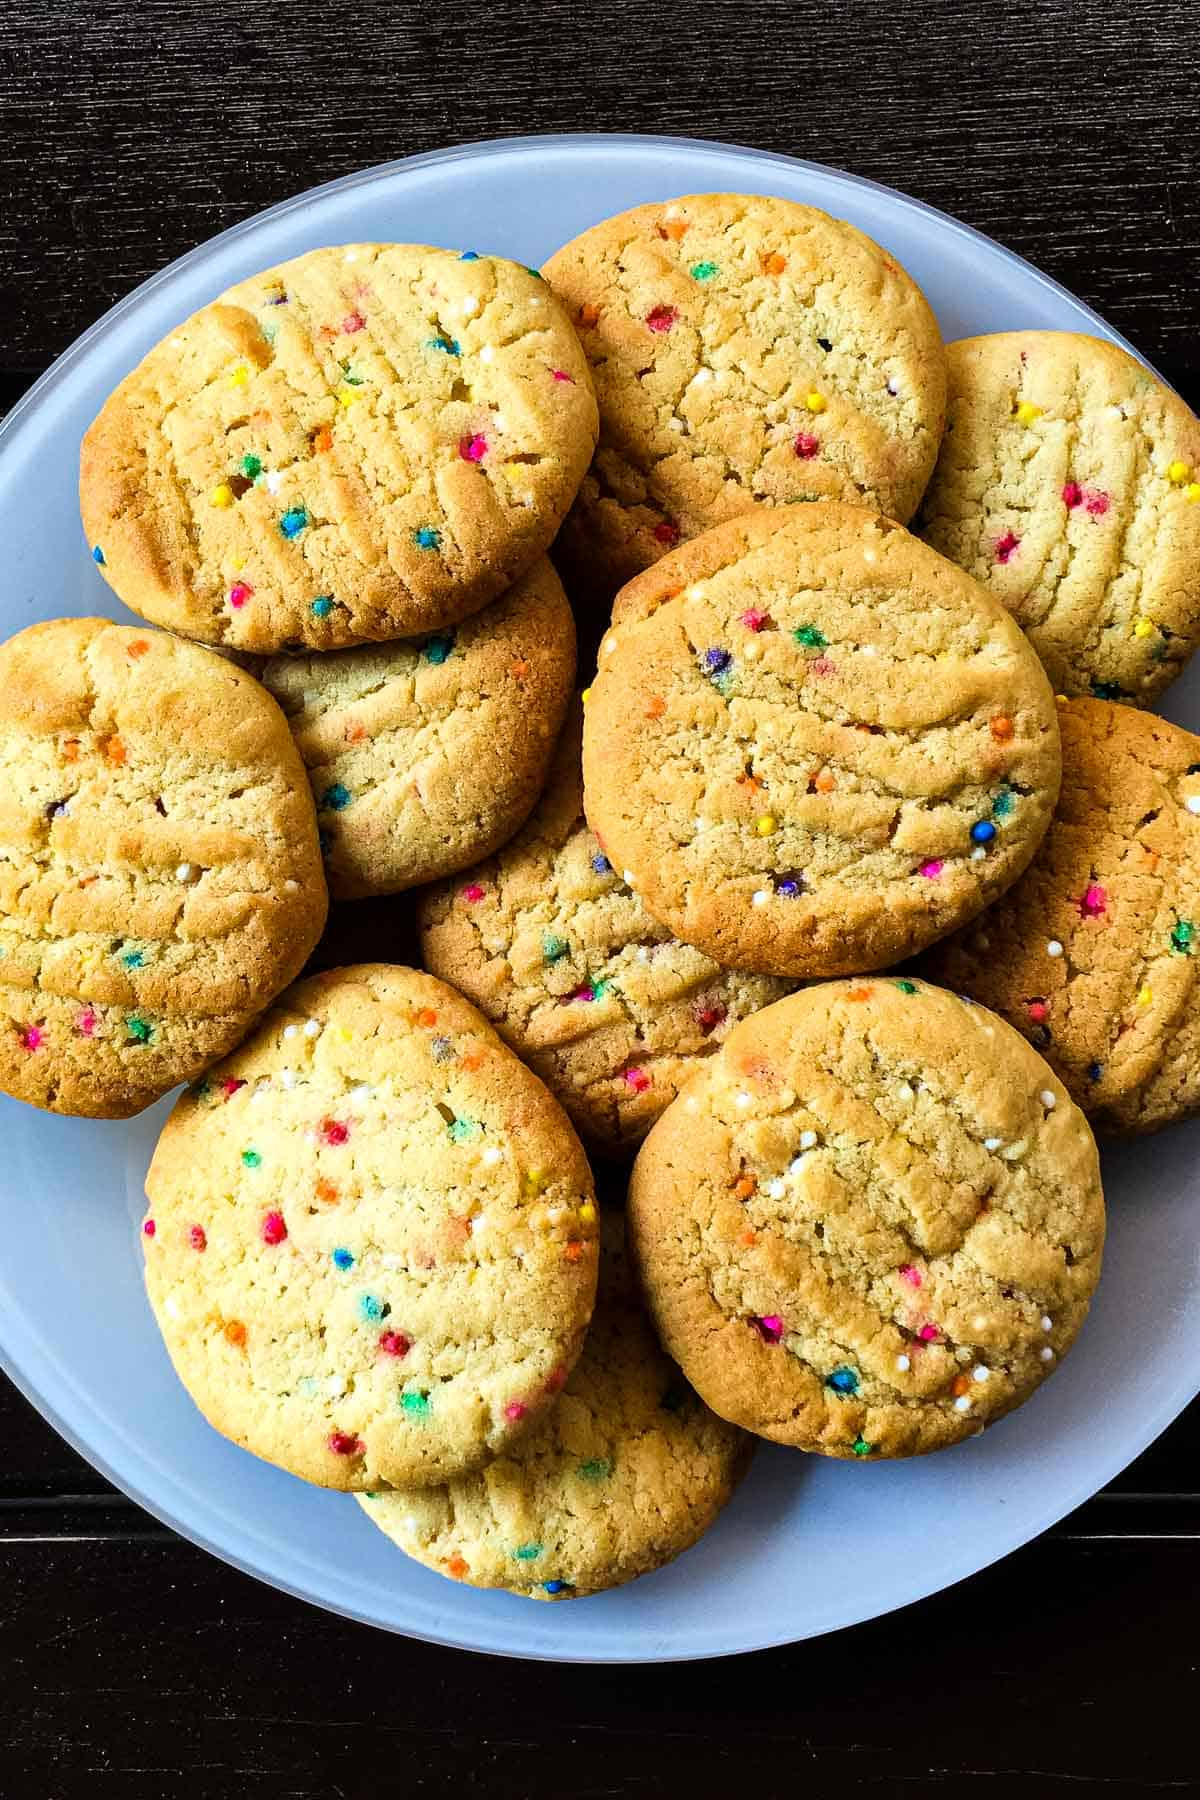 Round cookies with sprinkles on a white plate